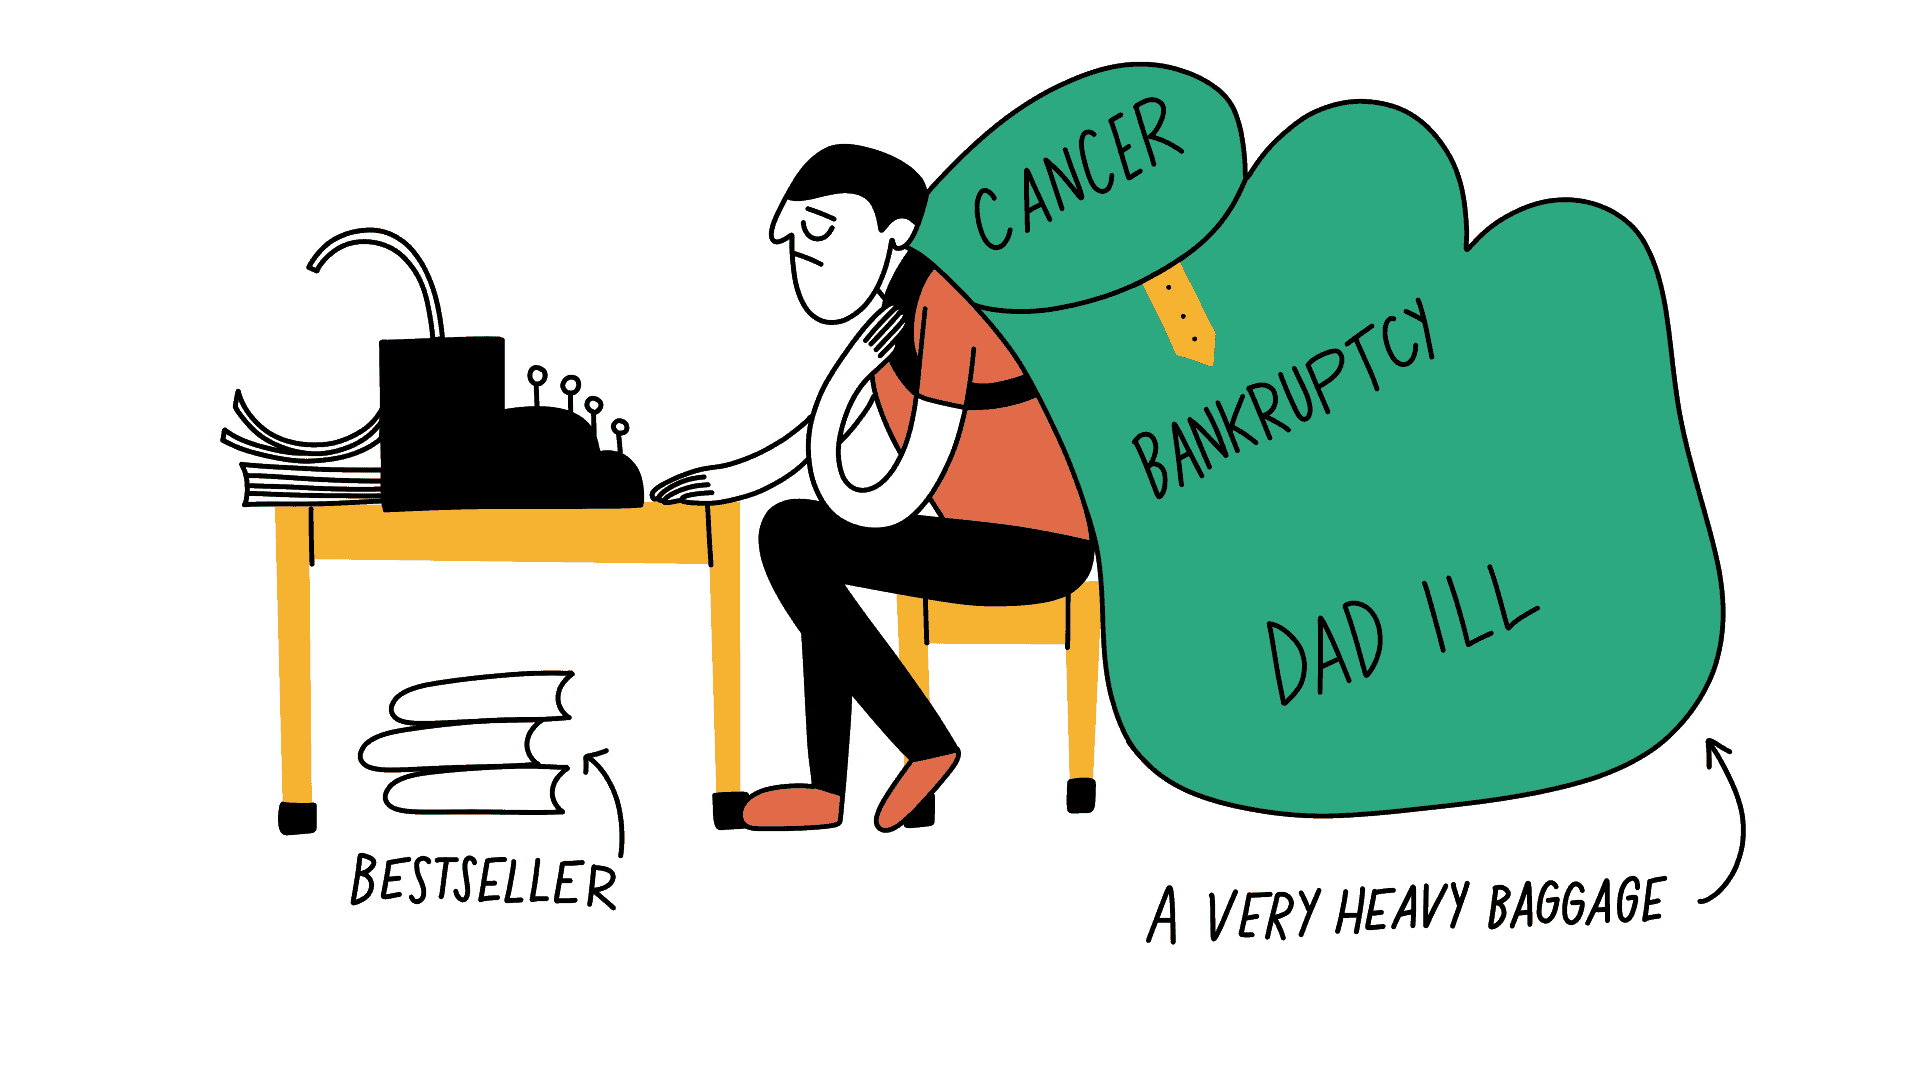 illustration of the author suffering under the weight of three loads on his back: his cancer, his bankruptcy, and his father's illness.